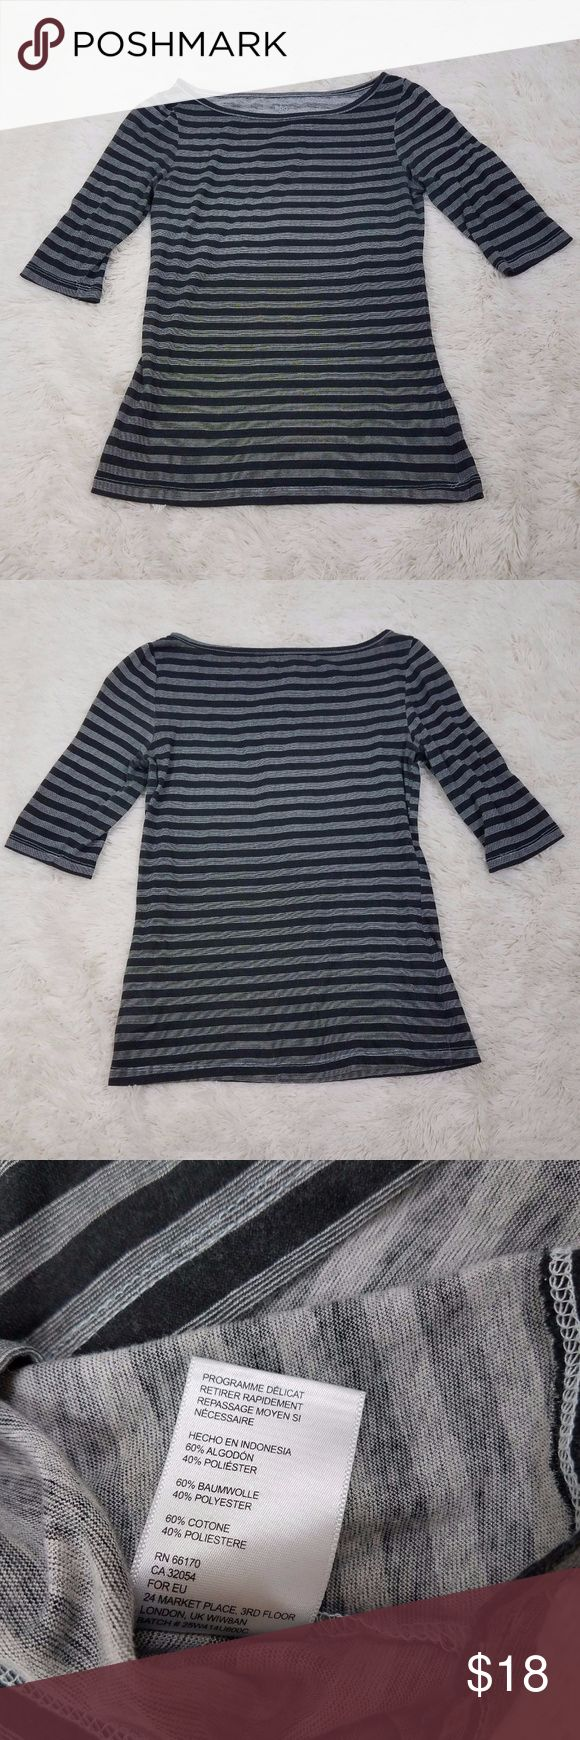 NWOT Urban Outfitters BDG Taylor Swift Style Top Up for sale is a casual, Taylor Swift style Urban Outfitters BDG Striped Top, Size Small. This cute top features black and gray stripes, is lightweight (great for layering in the fall!) and features three quarter sleeves. The top has never been worn and is in excellent condition! Bought directly from the Urban Outfitters website. Price is firm. Urban Outfitters Tops